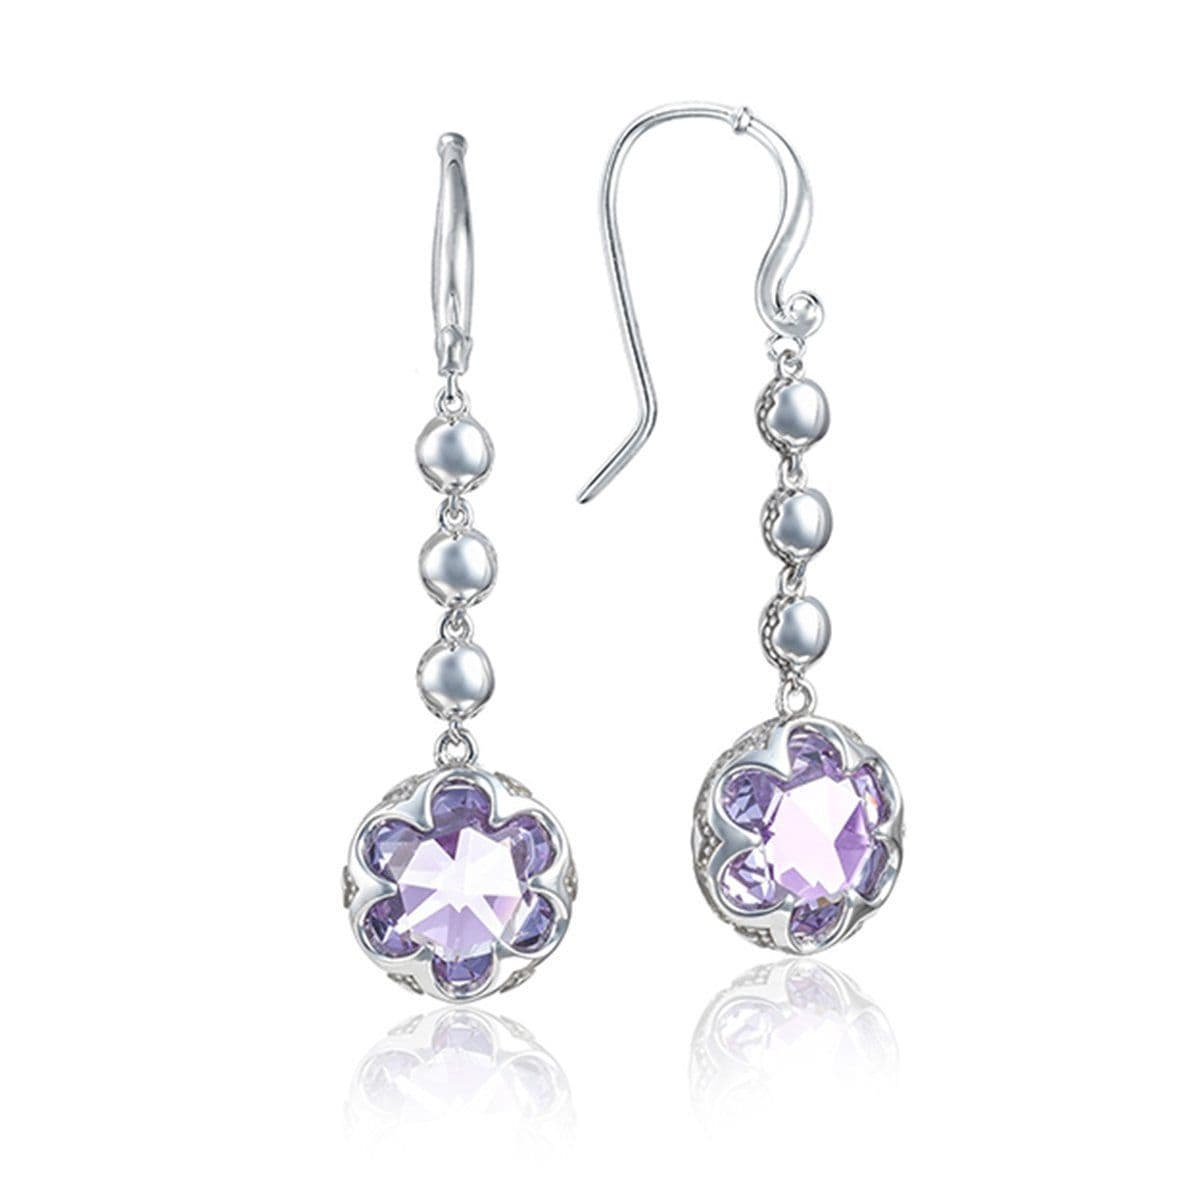 Silver 10MM Amethyst Dangle French Wire Earrings - SE21301-Tacori-Renee Taylor Gallery